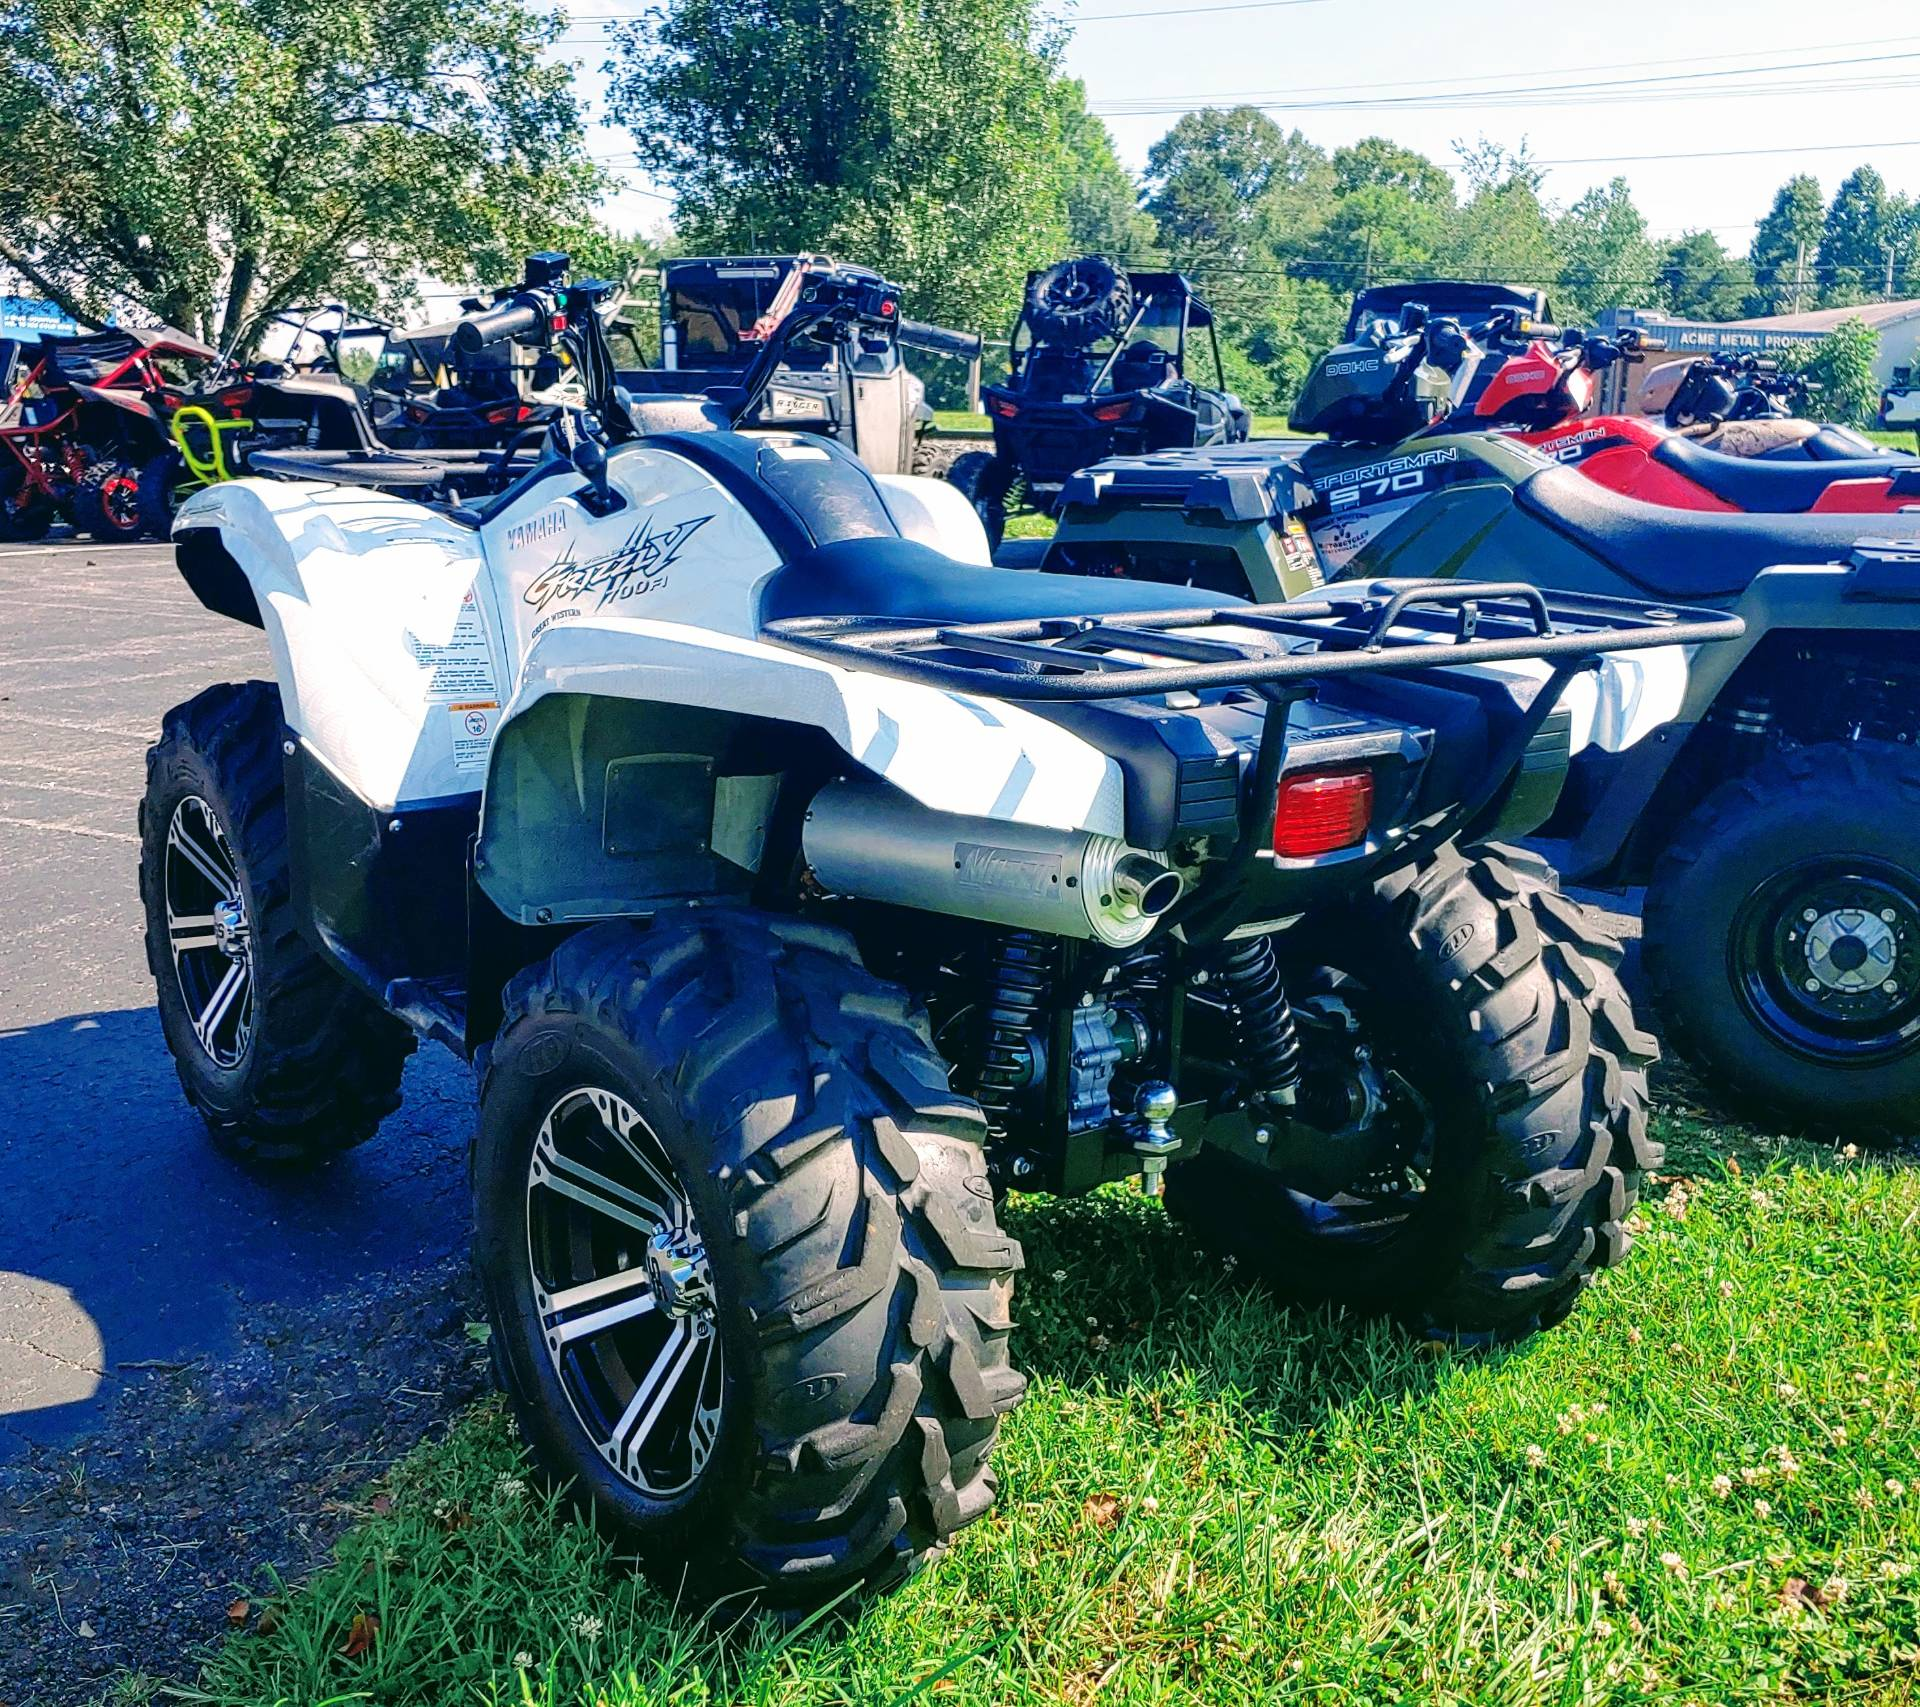 2010 Yamaha Grizzly 700 FI Auto. 4x4 EPS Special Edition in Statesville, North Carolina - Photo 4